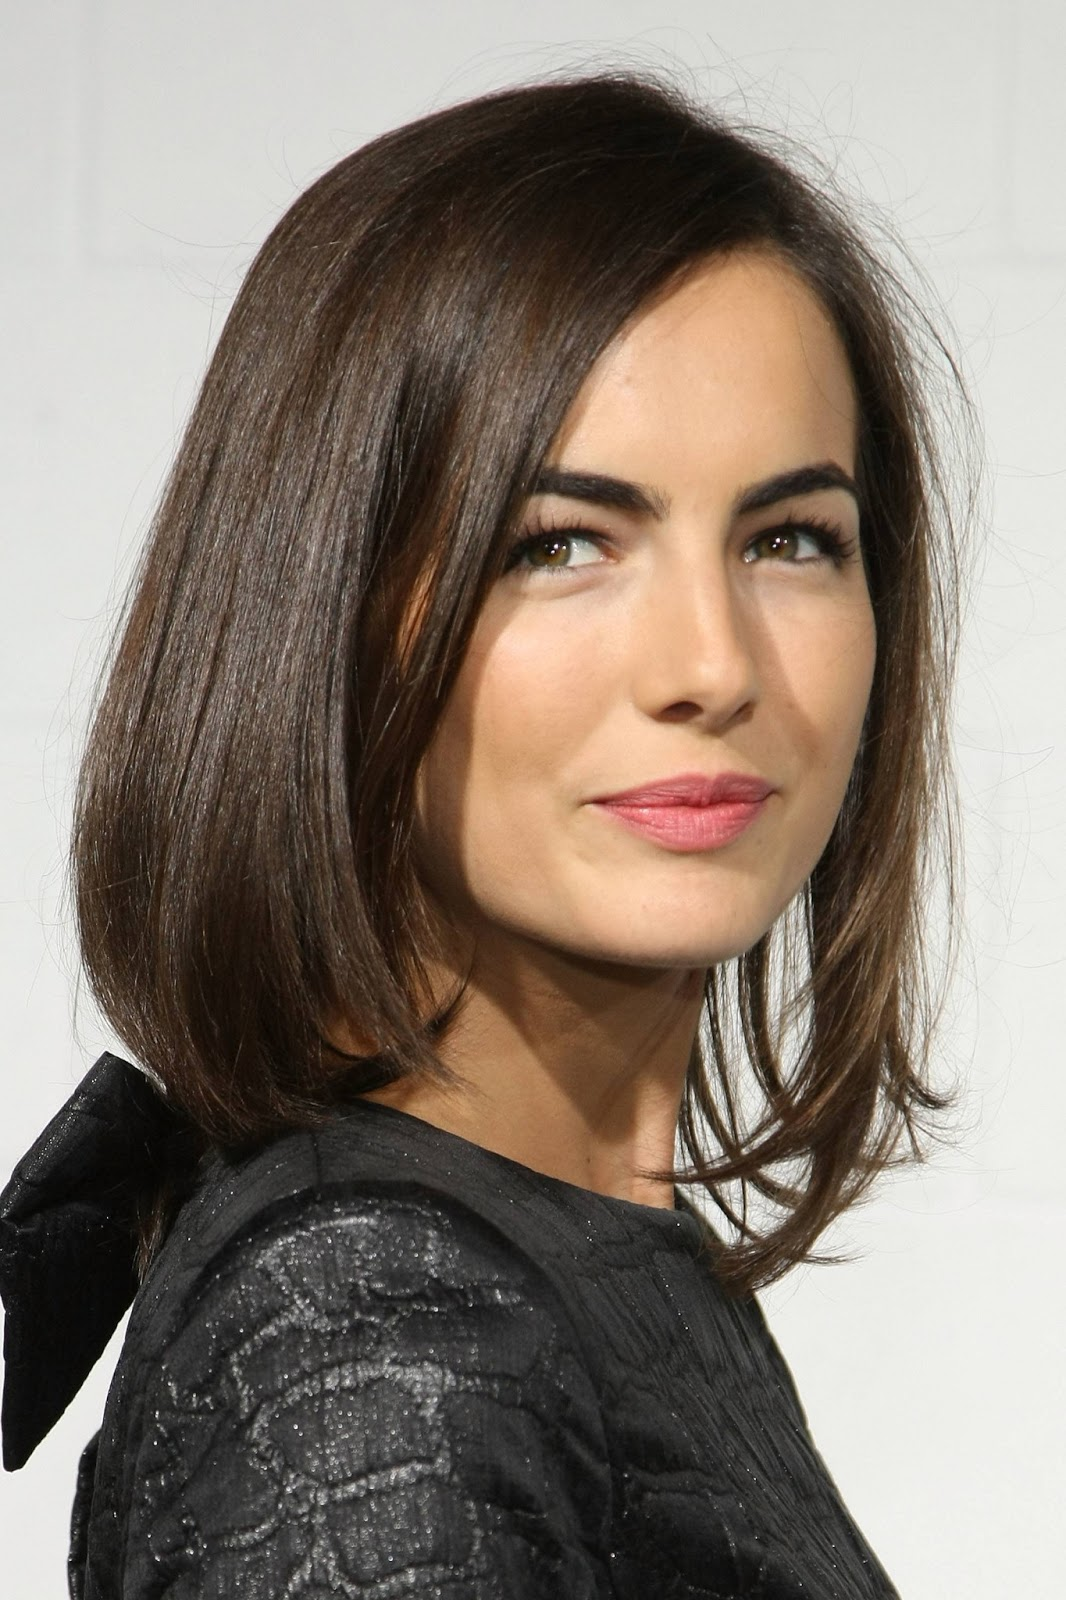 Inverted Bob Hairstyles For Women 2013 Hairstyles And